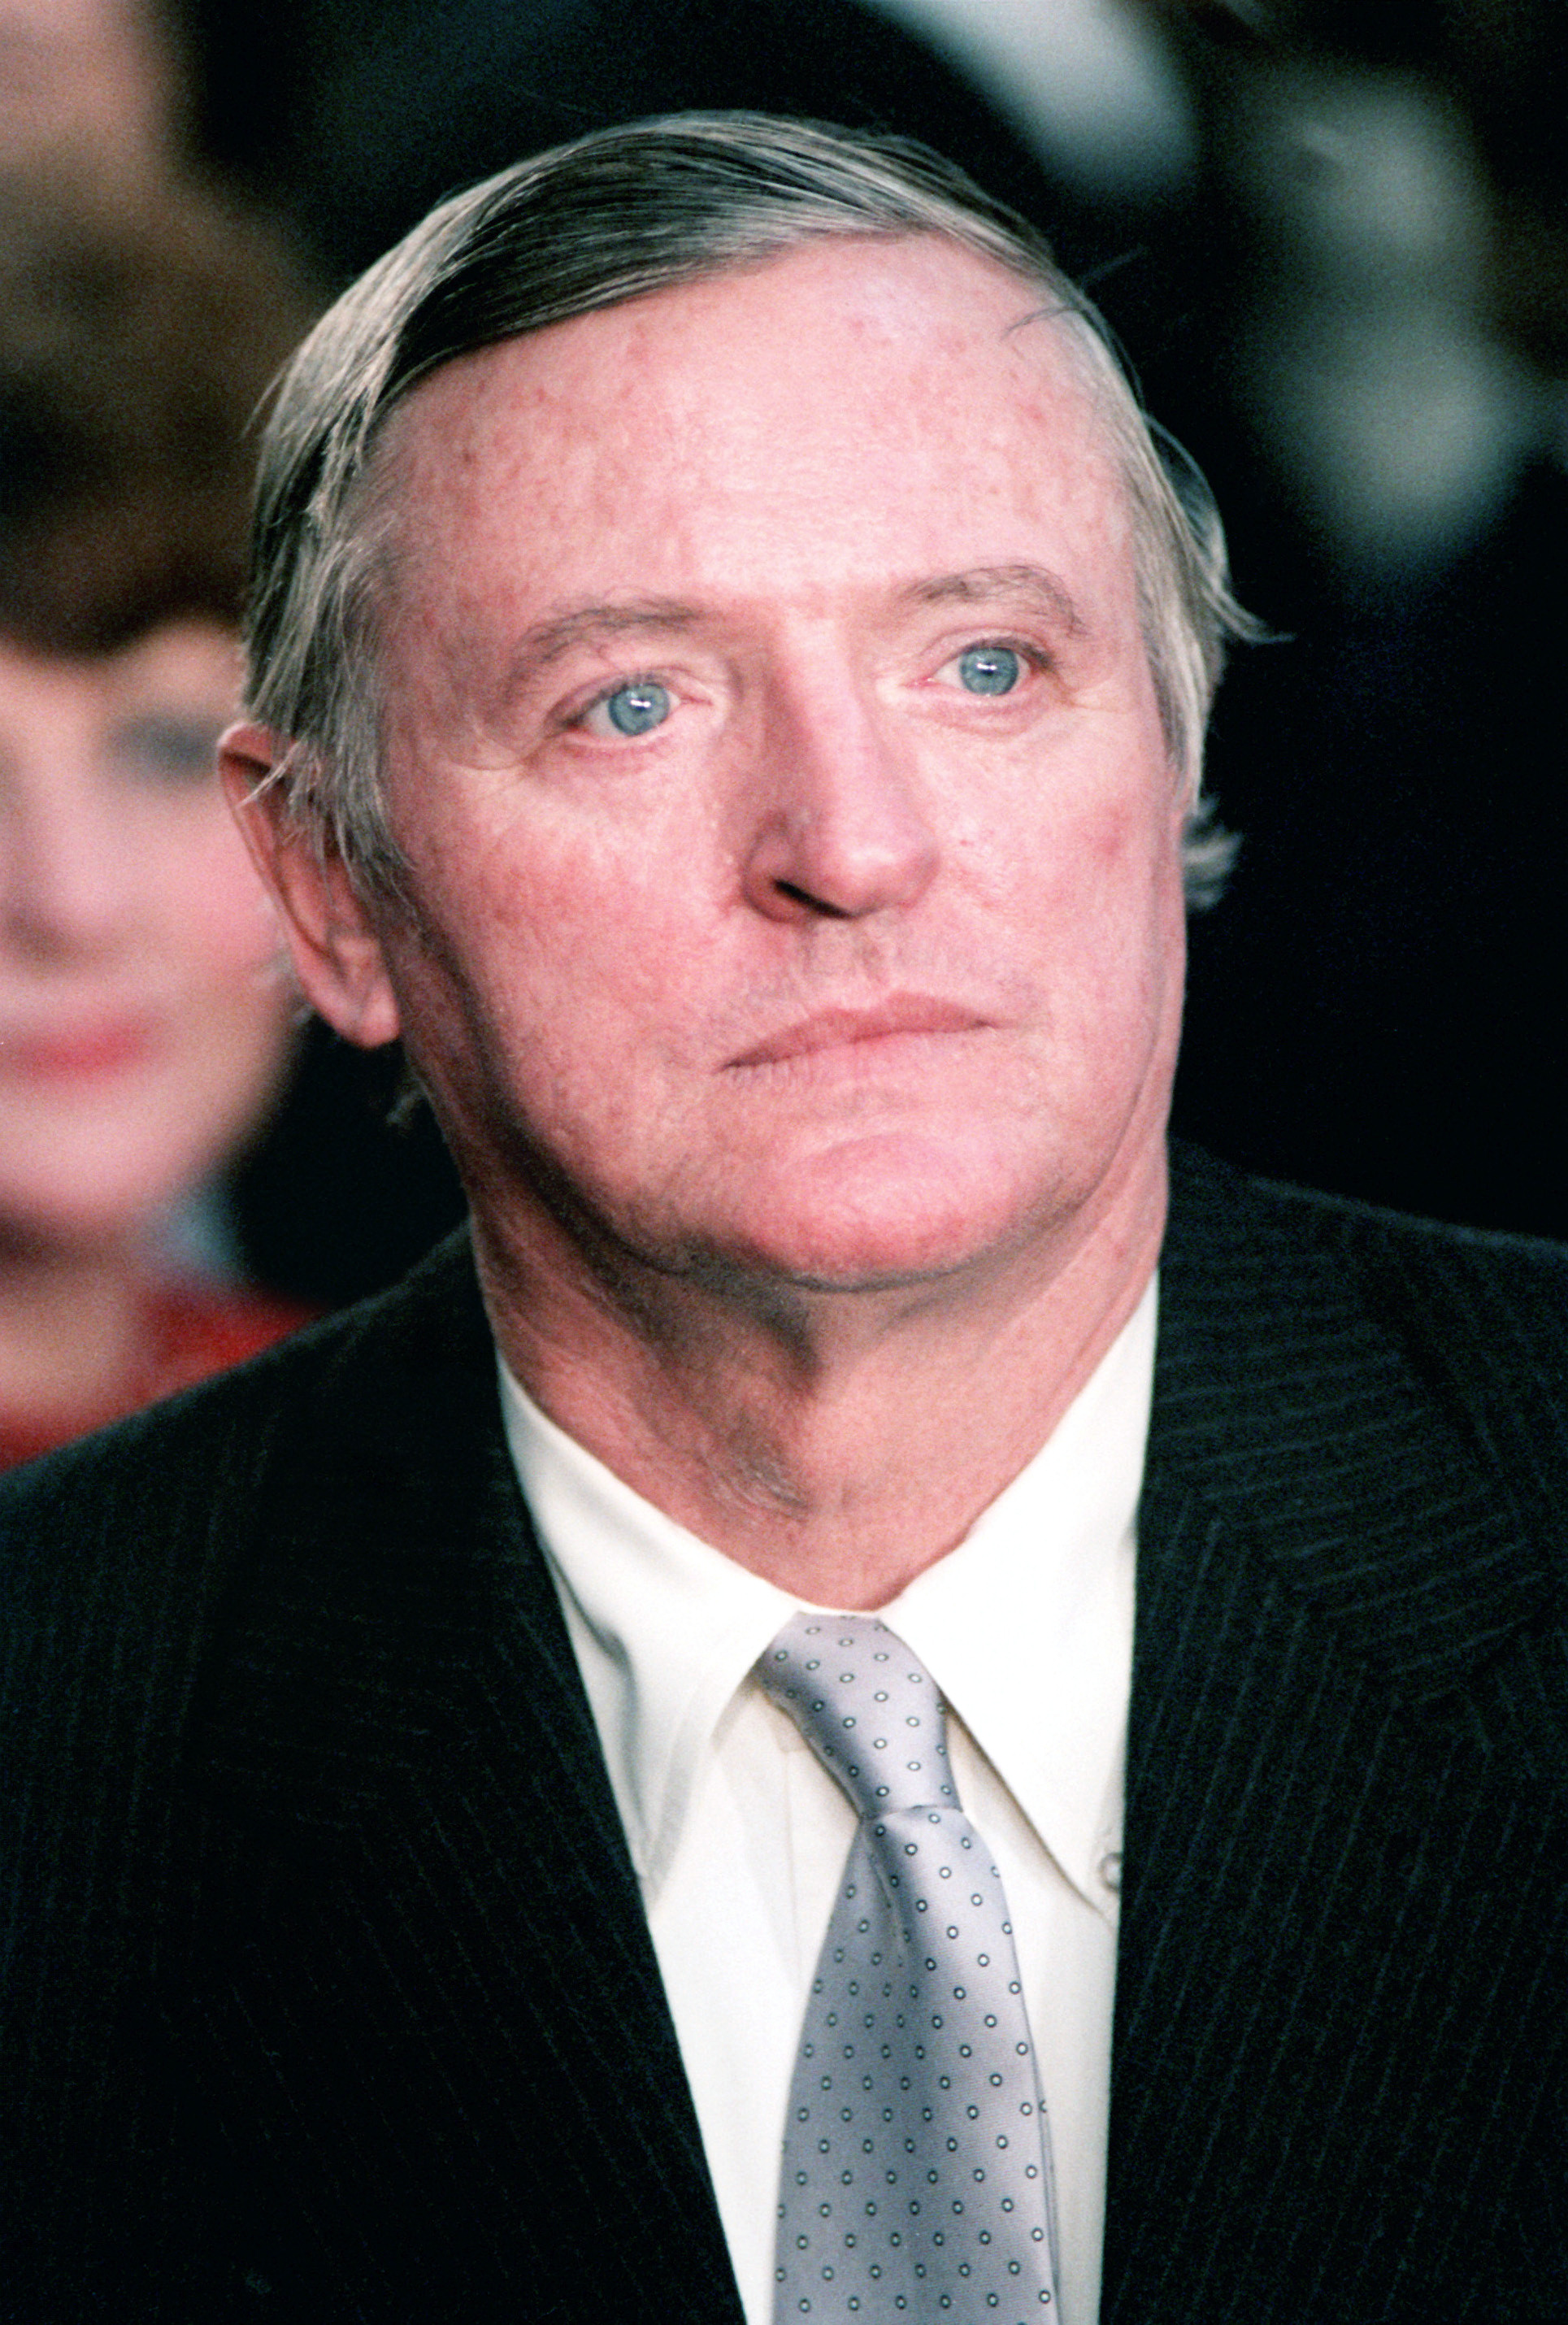 William_F._Buckley,_Jr._1985.jpg